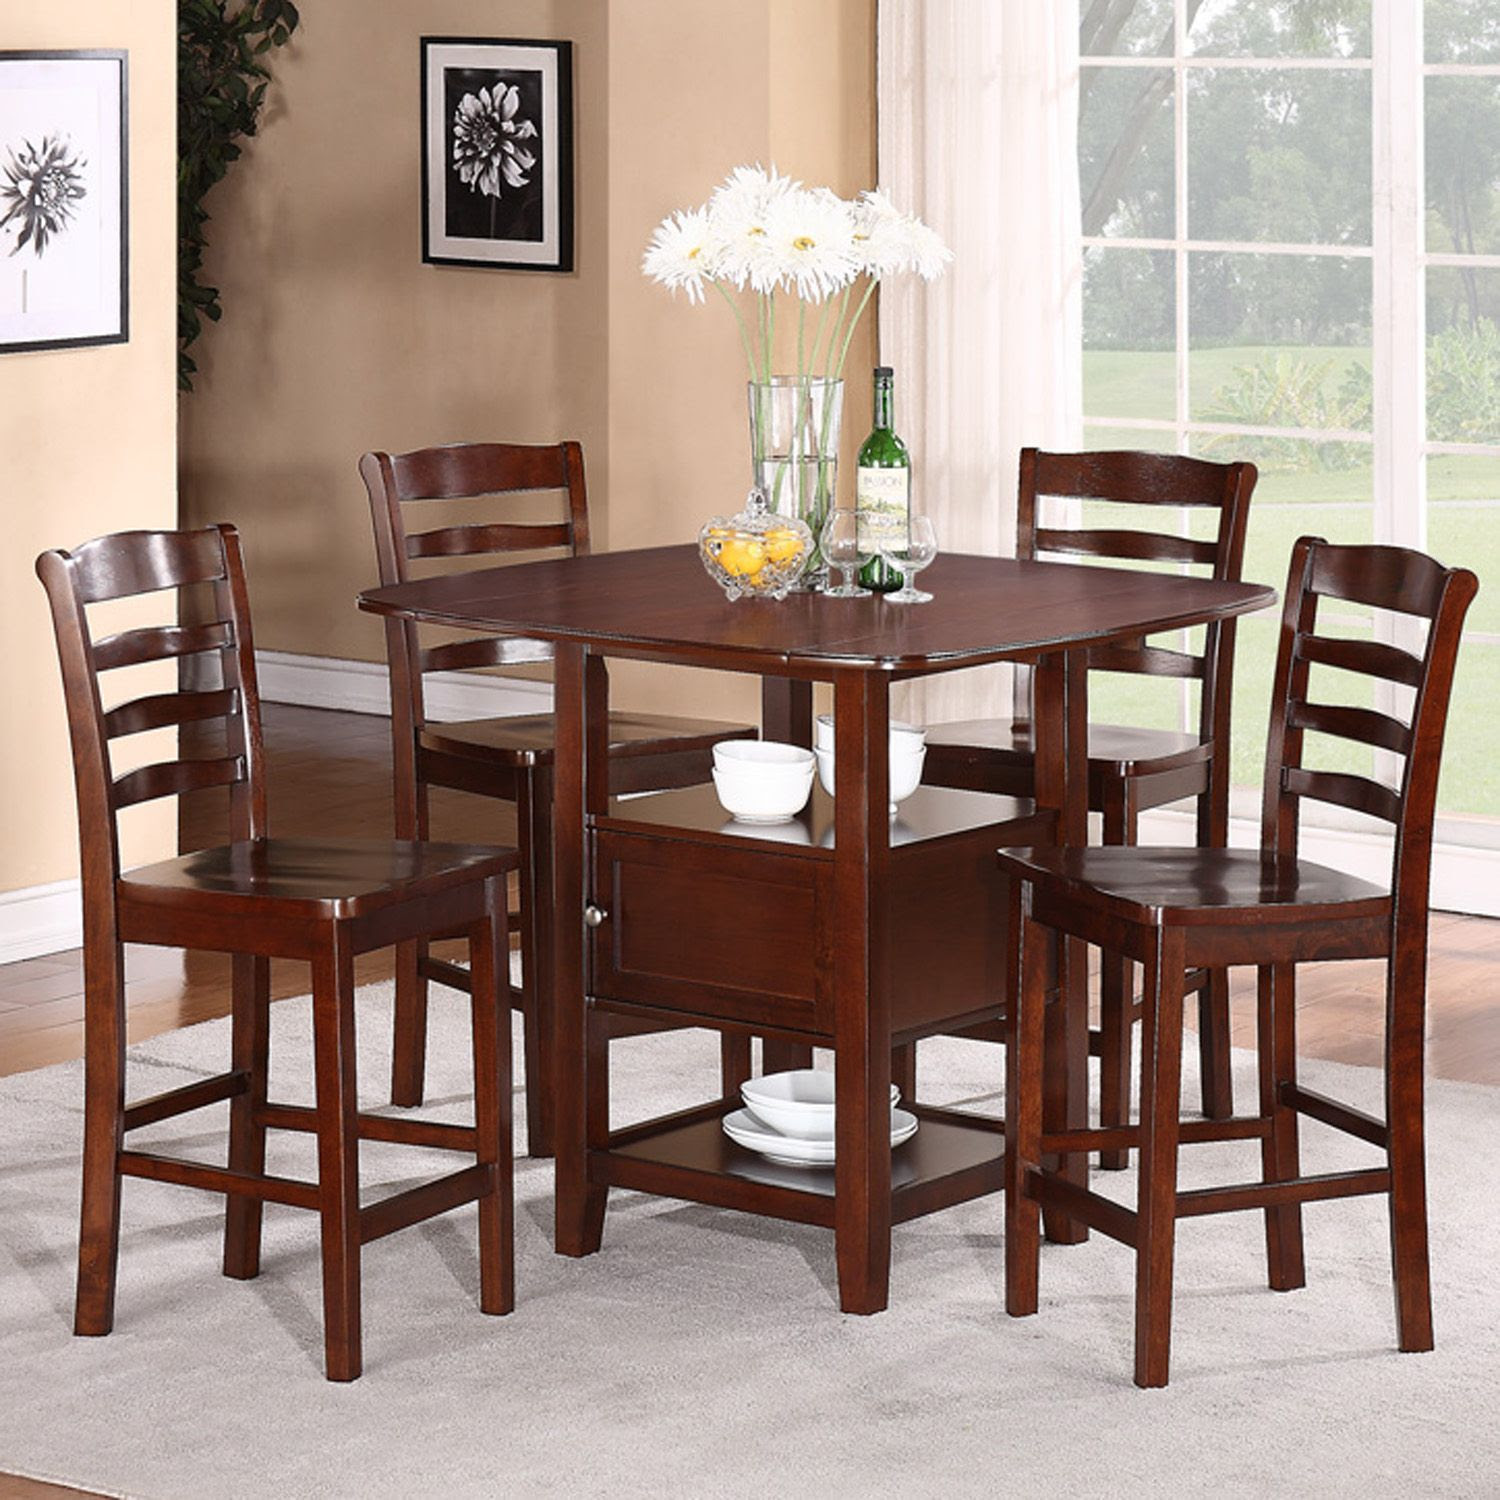 5pc Dining Set with Storage  Shop Your Way: Online Shopping \u0026 Earn Points on Tools, Appliances